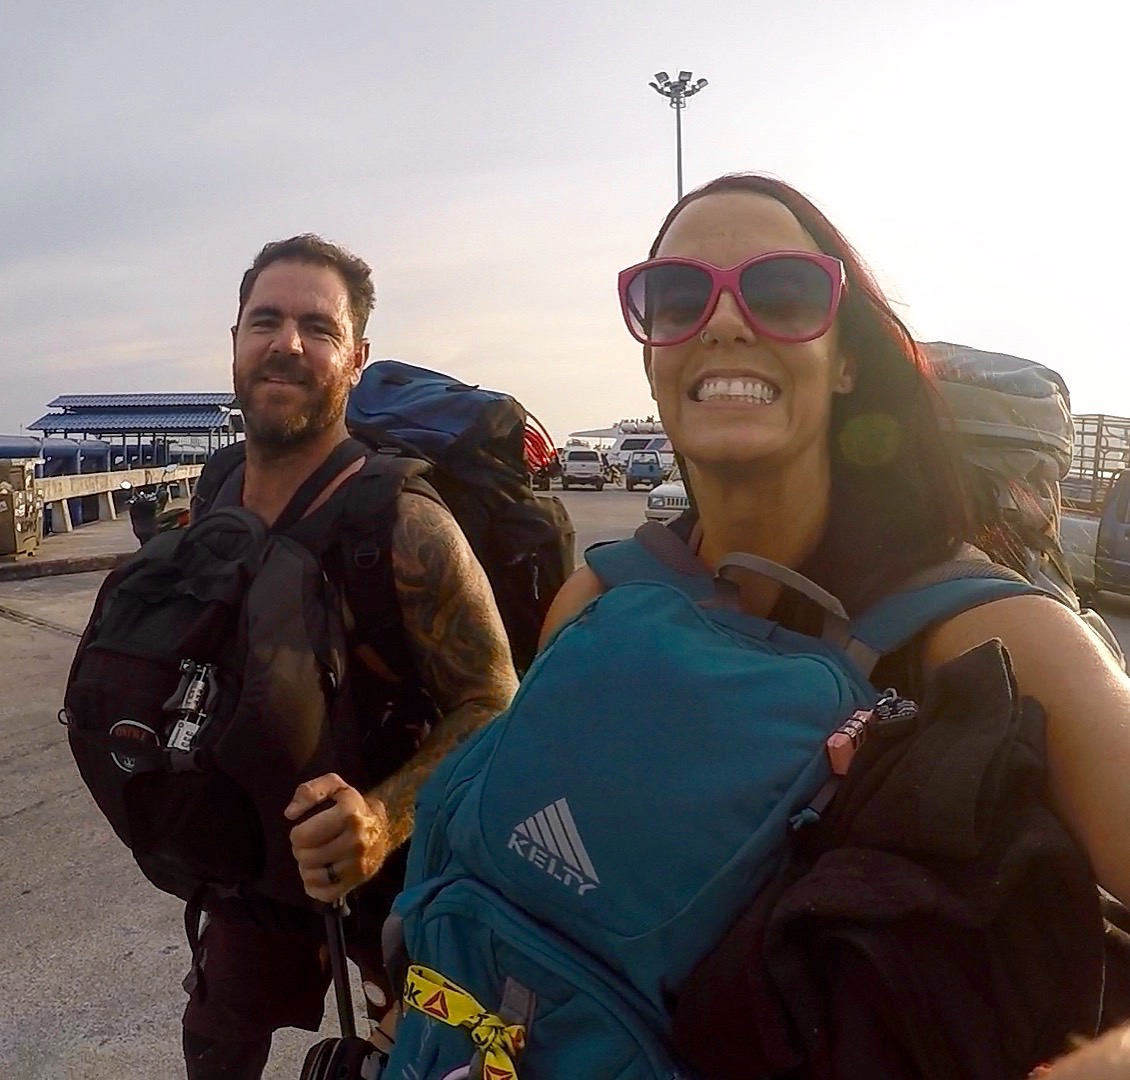 Cheesin for the camera because we're able to physically carry all that we need for a 4 month trip.